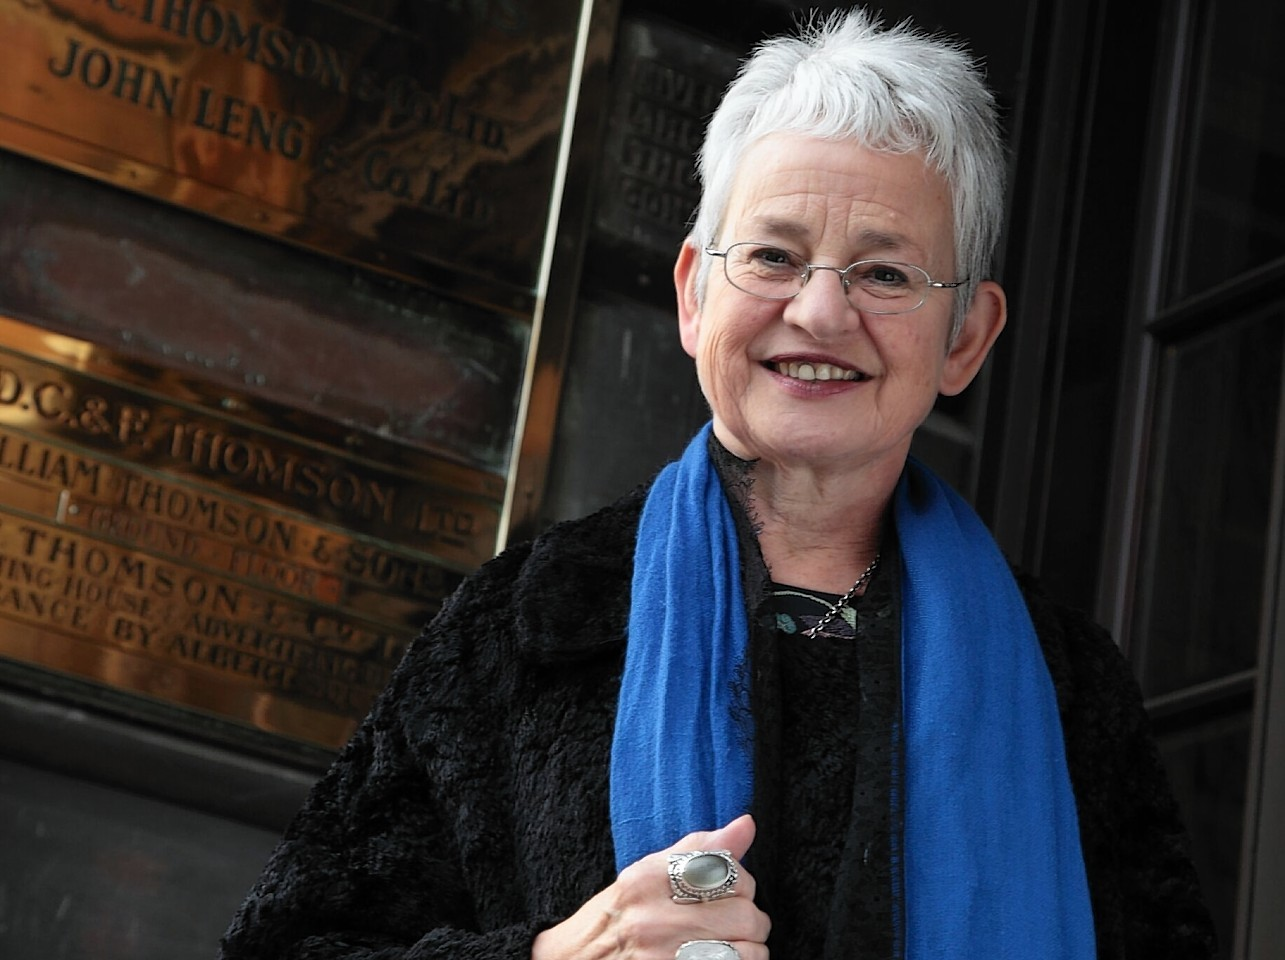 Award-winning author Jacqueline Wilson